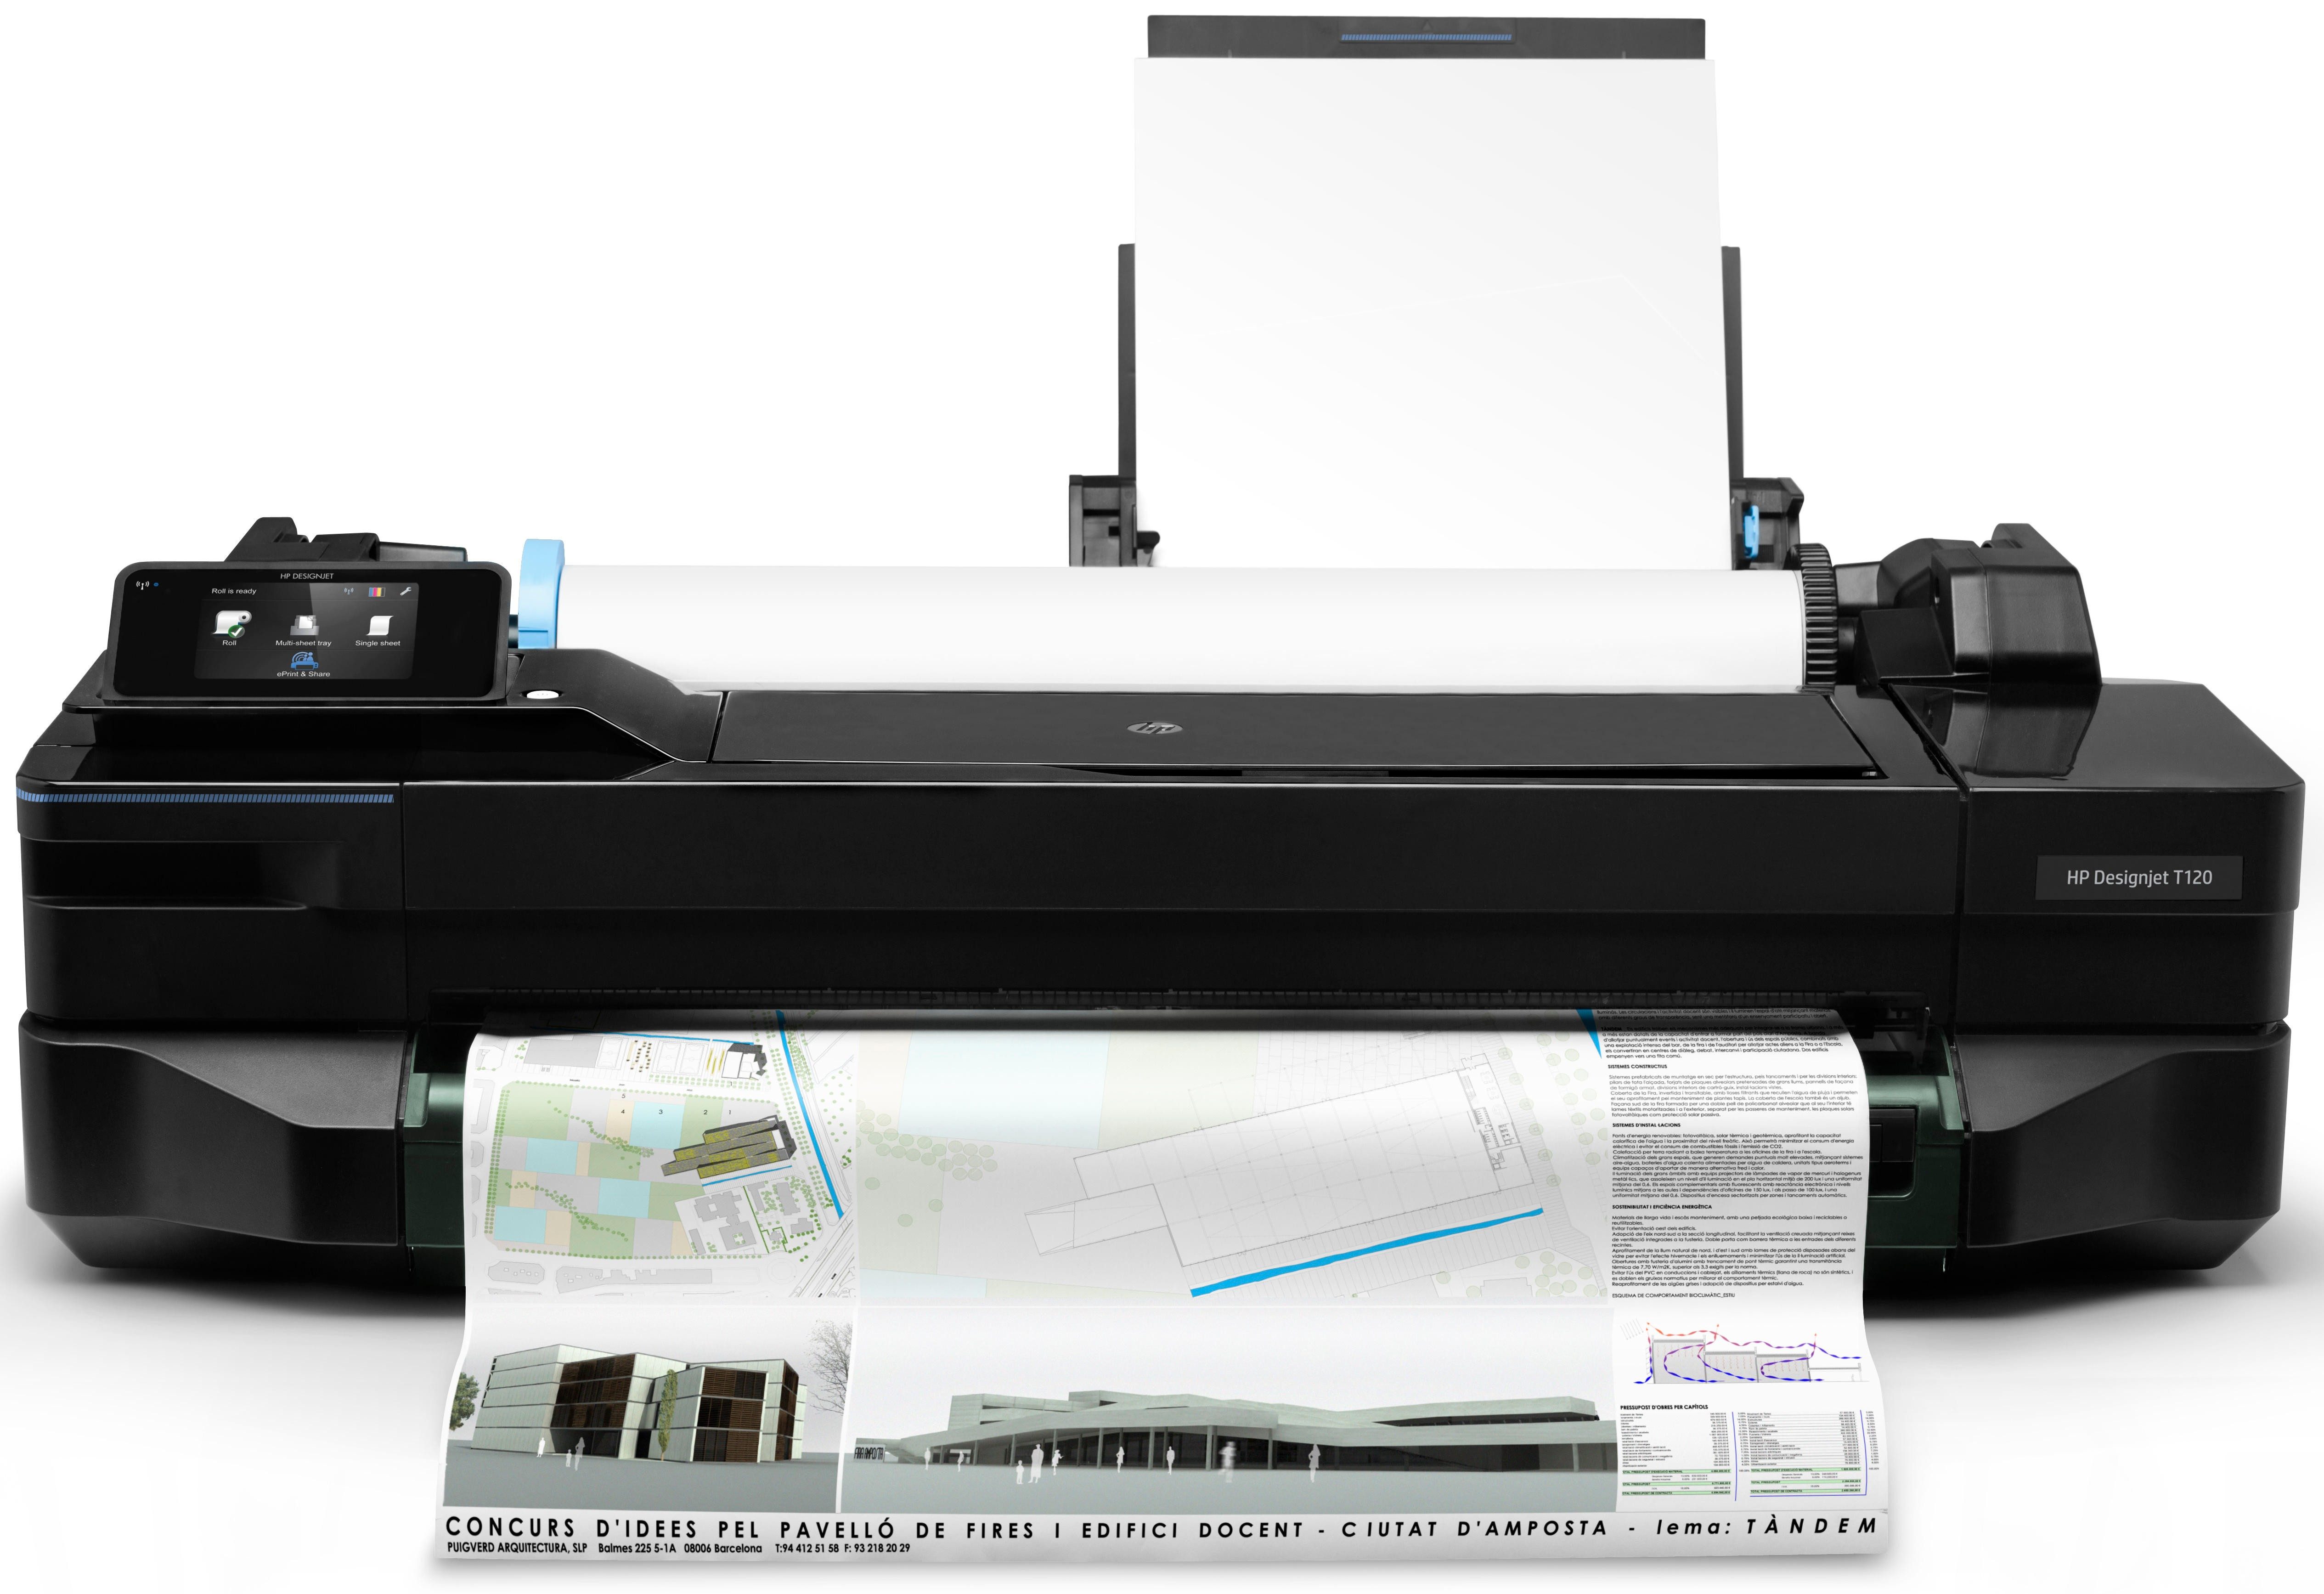 4 separate inks  Res 1200x1200dpi  Media handling: sheet feed  roll feed  input tray  automatic cutter  256MB memory   Network  Wi-FI  E-print  USB2.0 supplies: 711 Black 711 Color